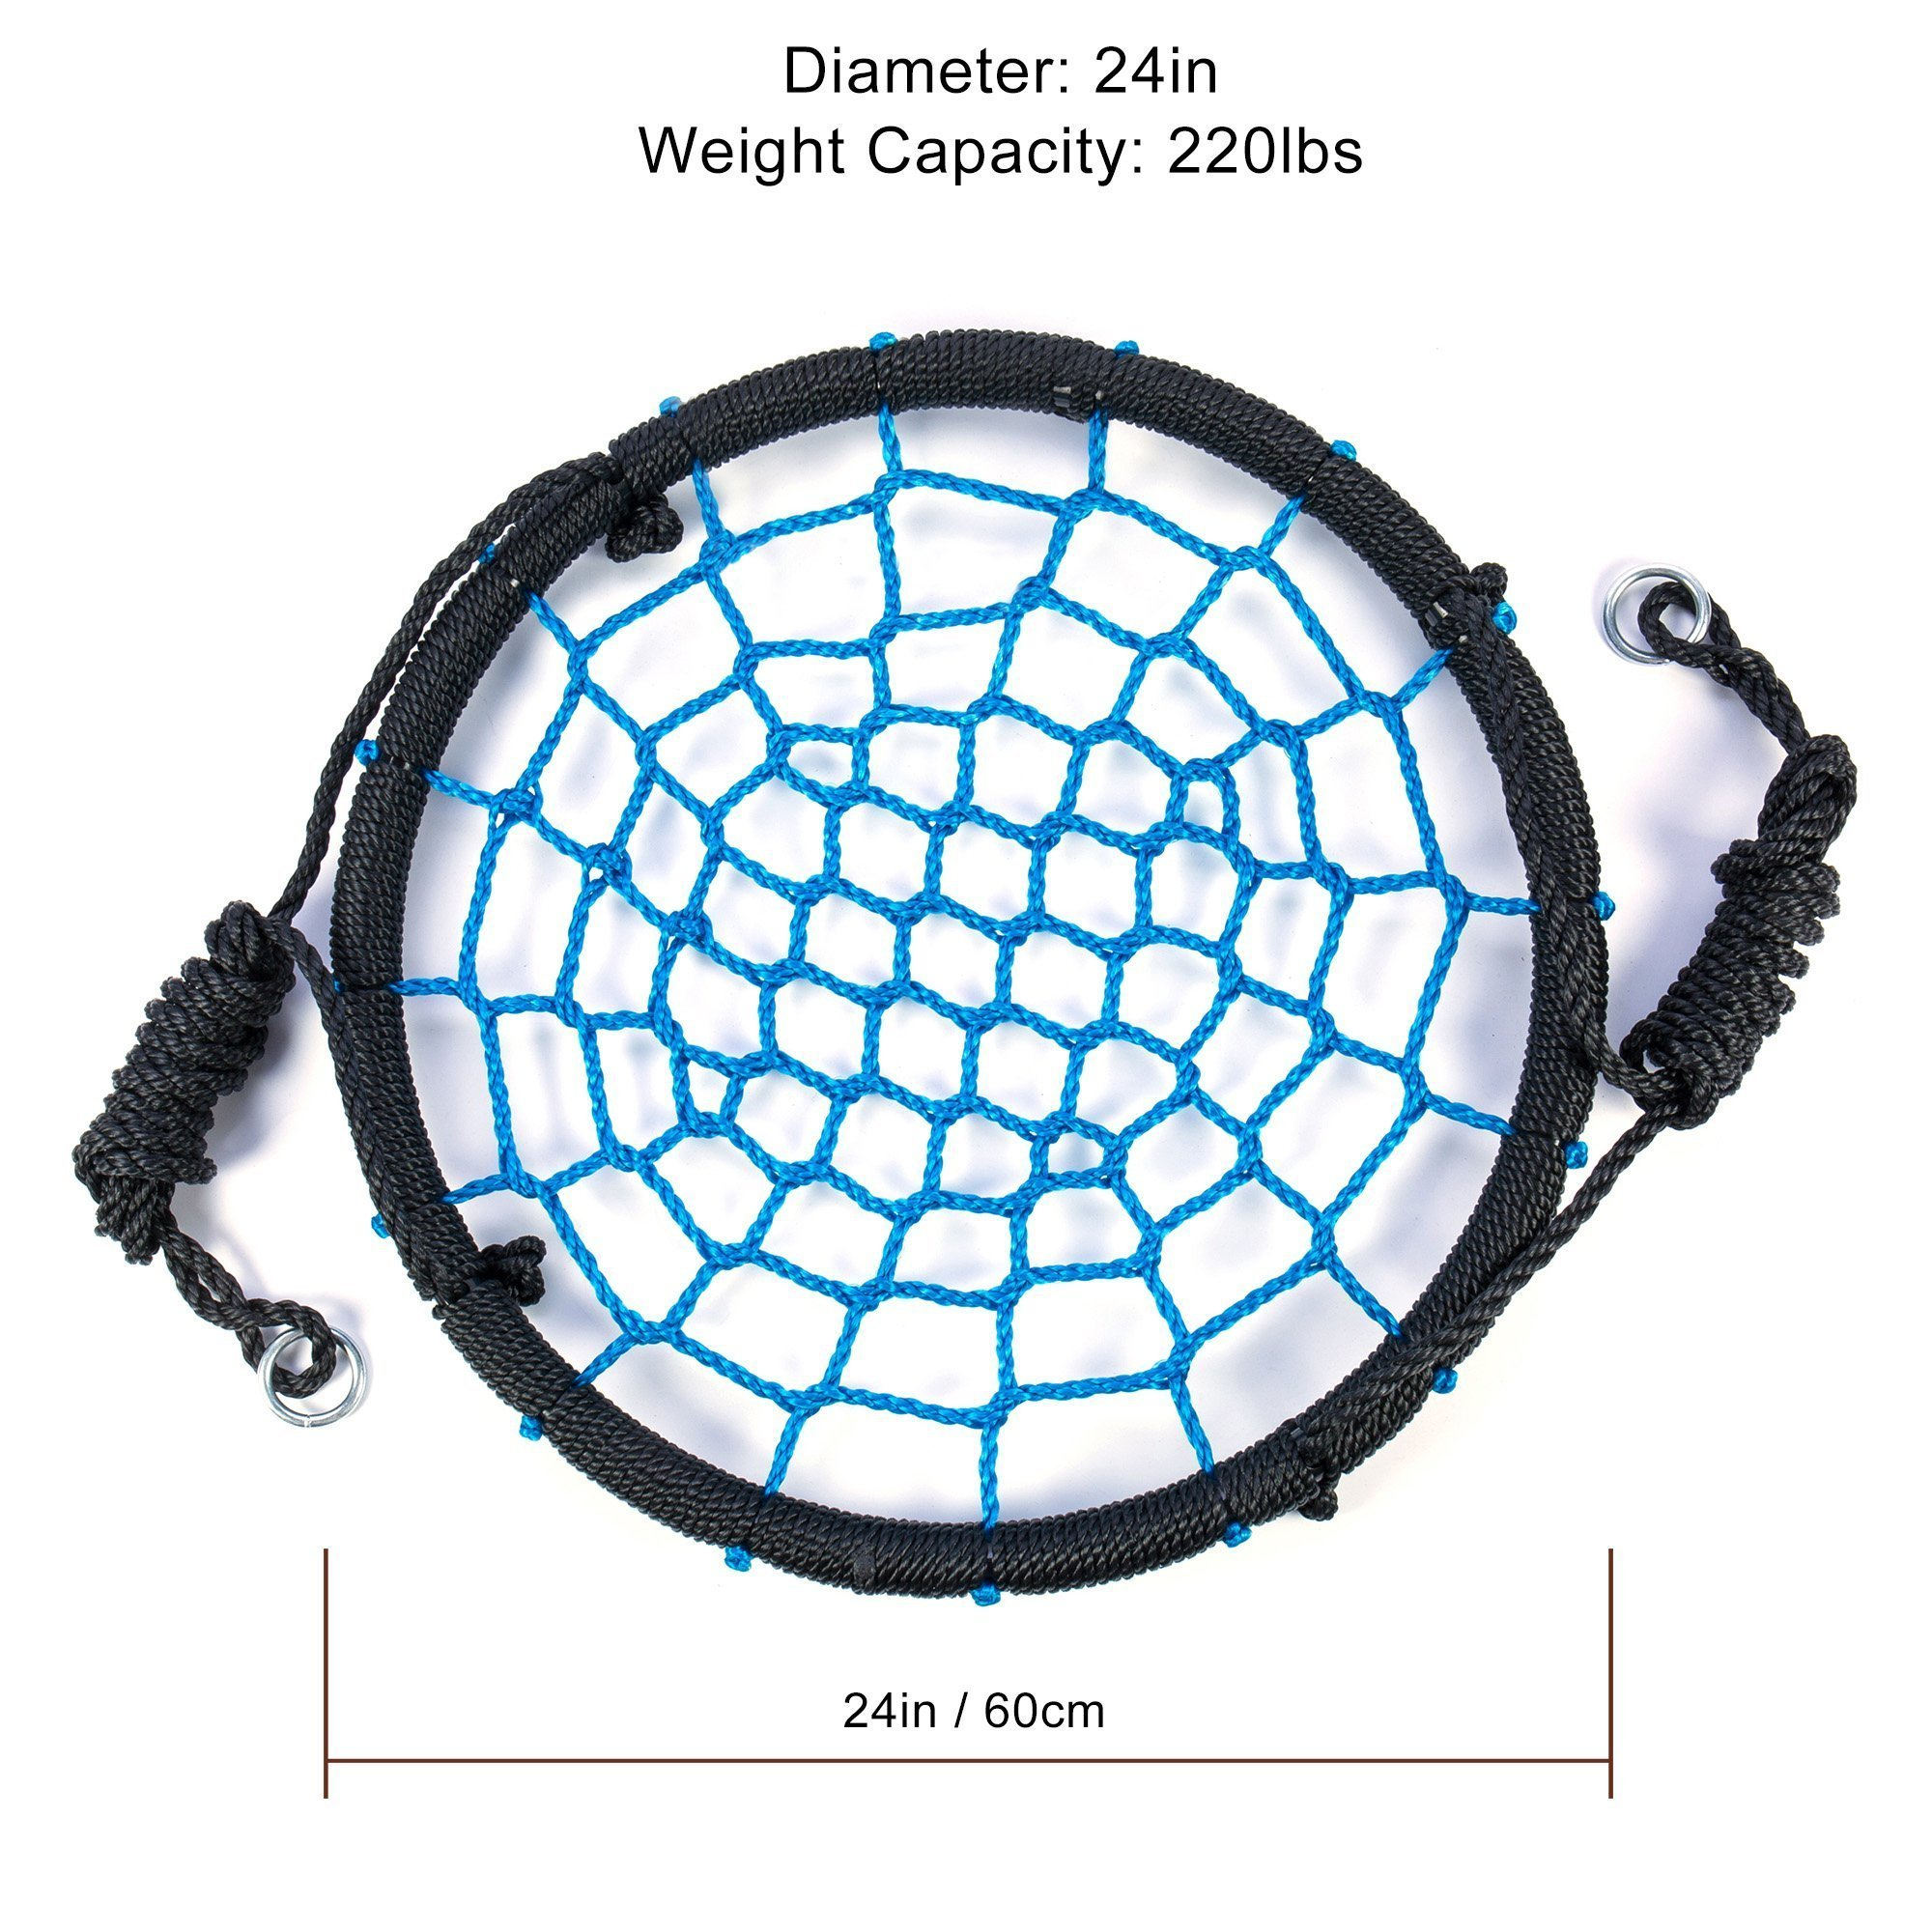 Tree Swing Spider Web - 24 Inch Diameter,220 lb Weight Capacity, Great for Playground, Tree, Outdoor Use Easy to Install and Non-Stop Fun for Kids by RESTAR (Image #1)